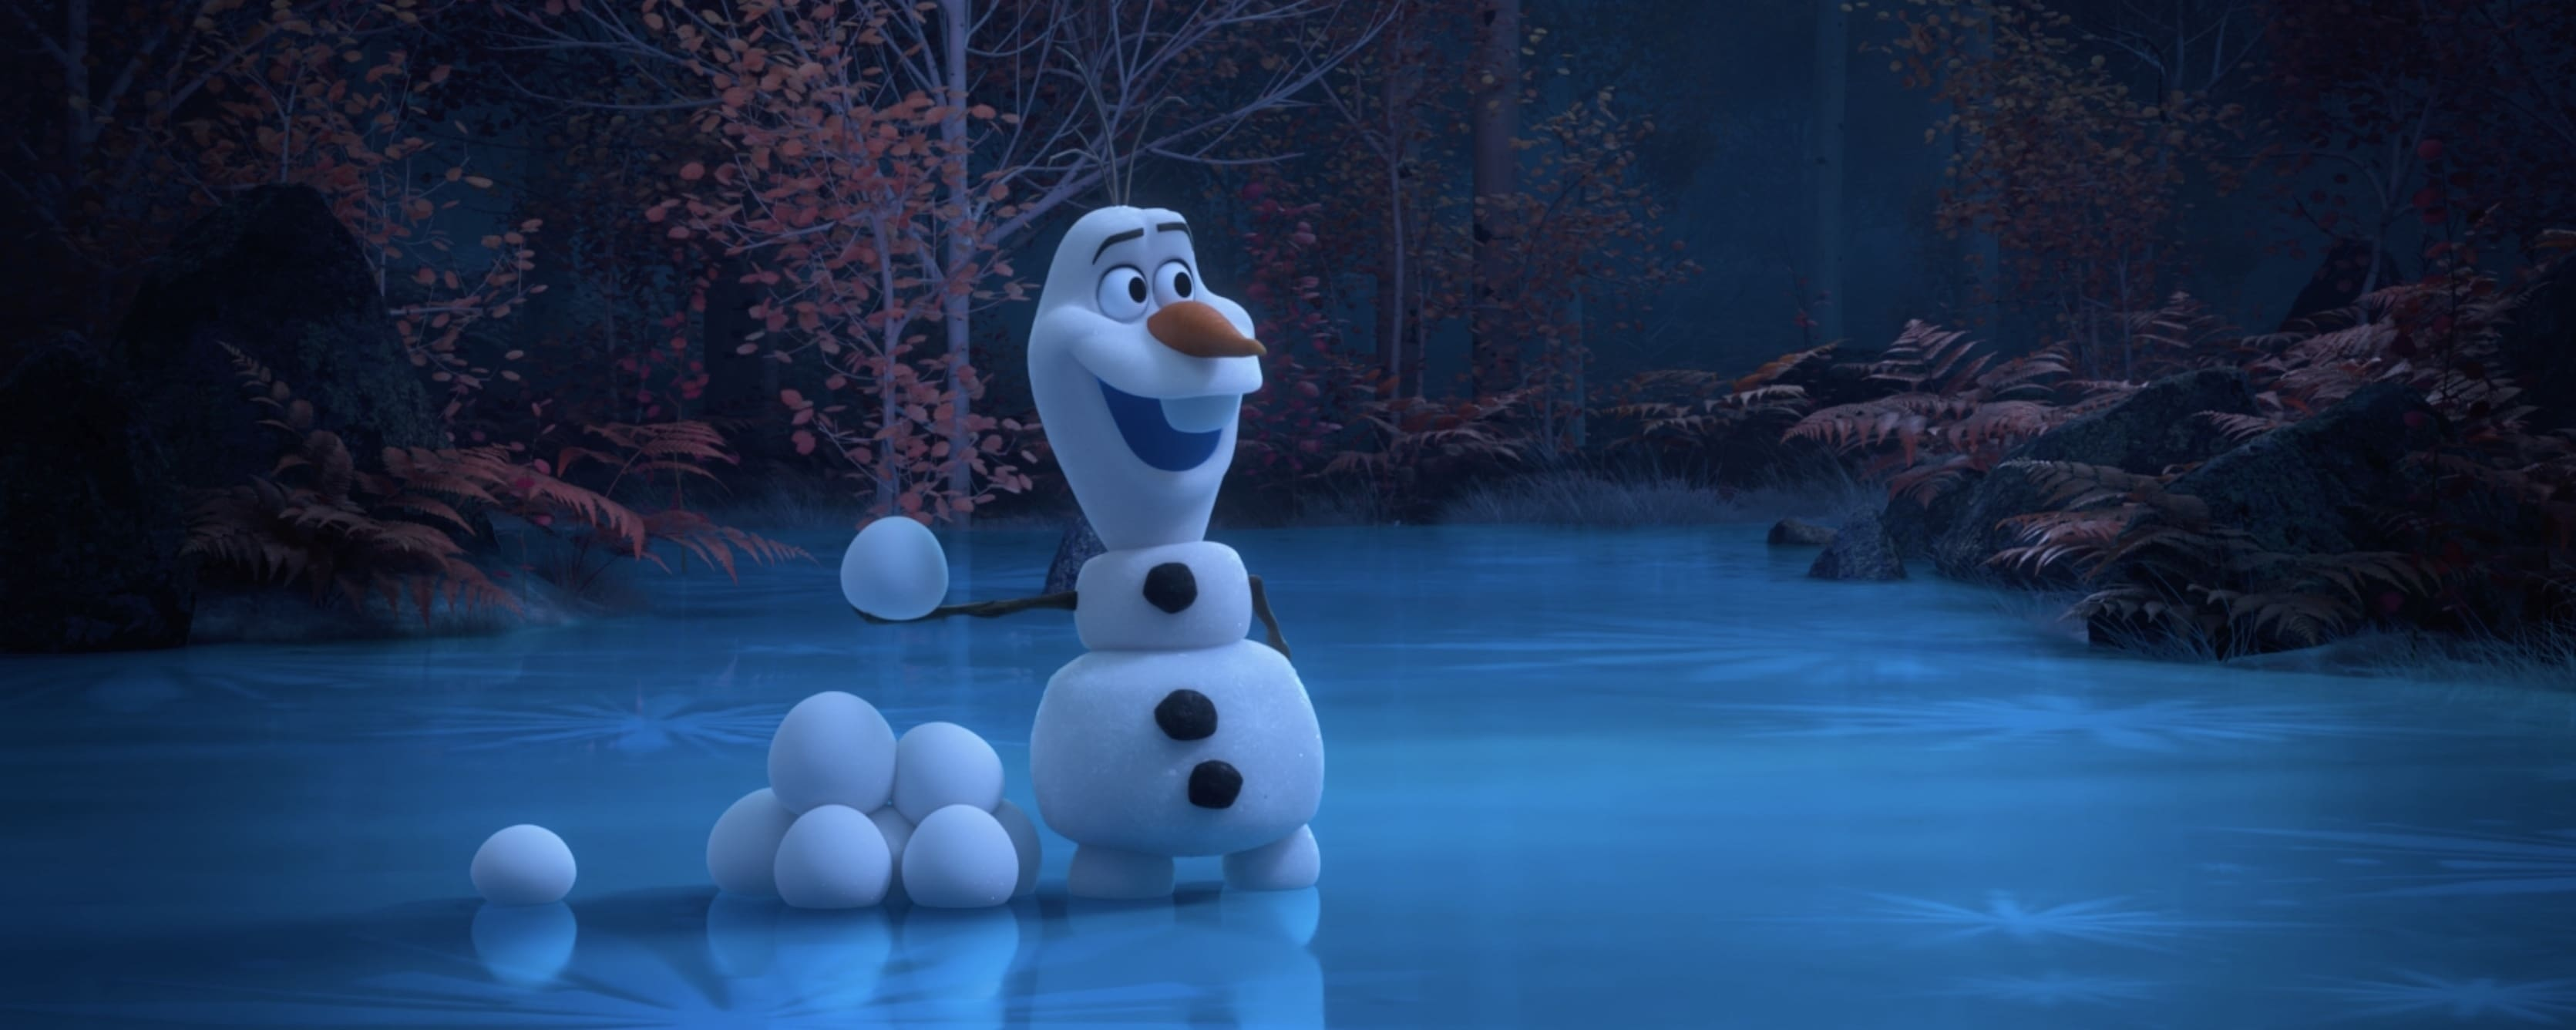 Olaf-fun-with-snow